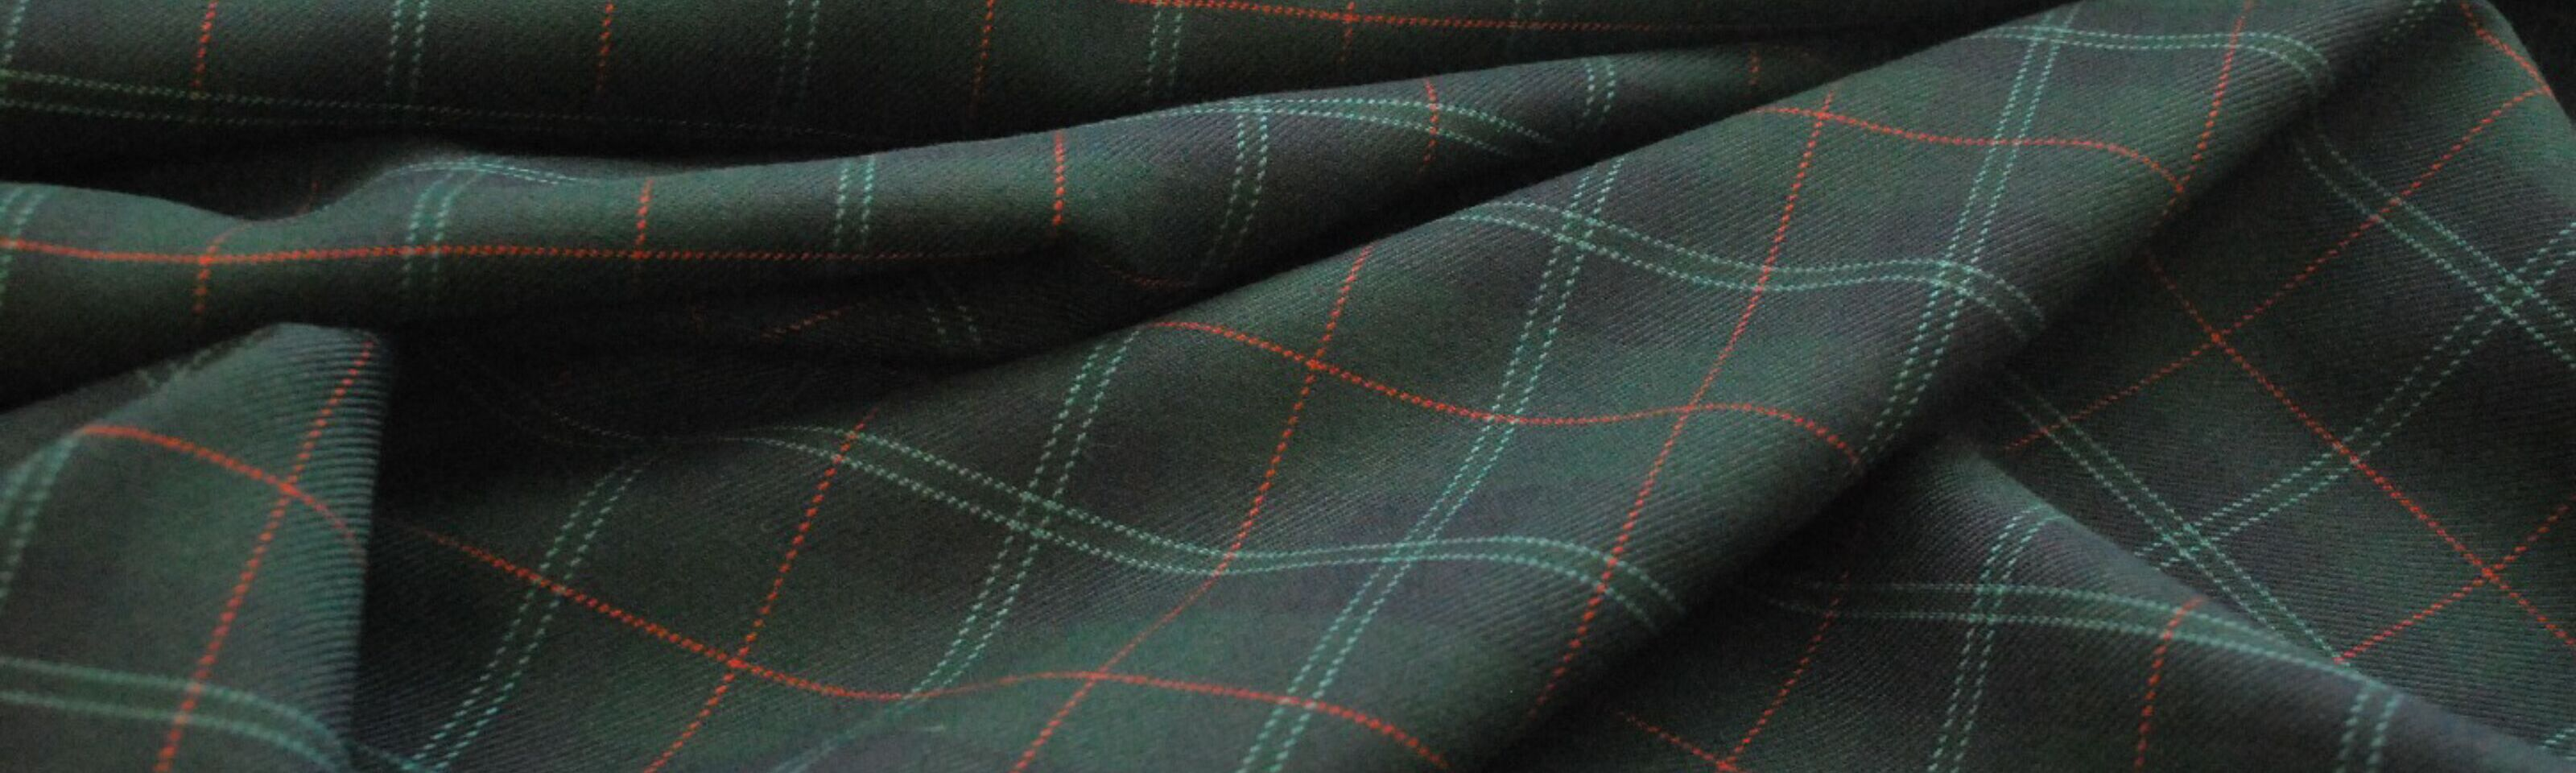 Utterley Buttery_Check poly wool suiting fabric